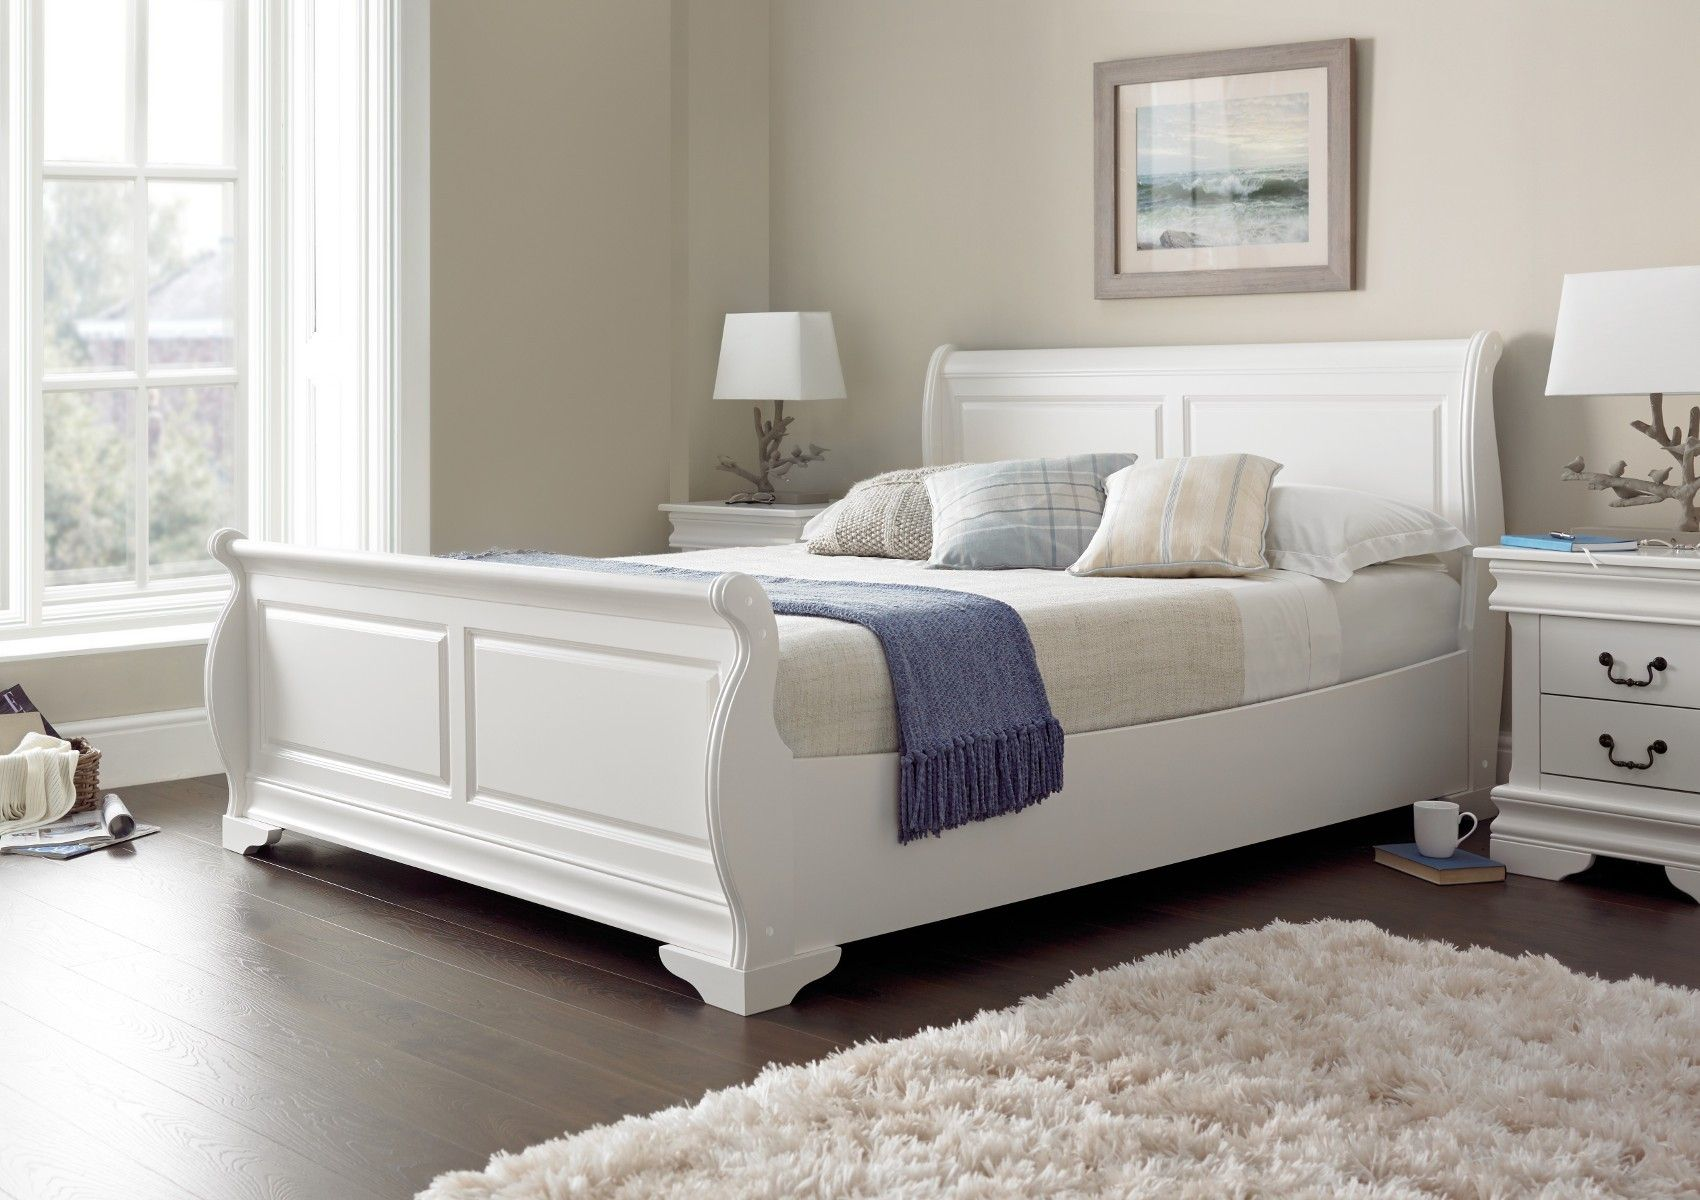 White Beds Louie Polar White New Painted Wood Wooden Beds